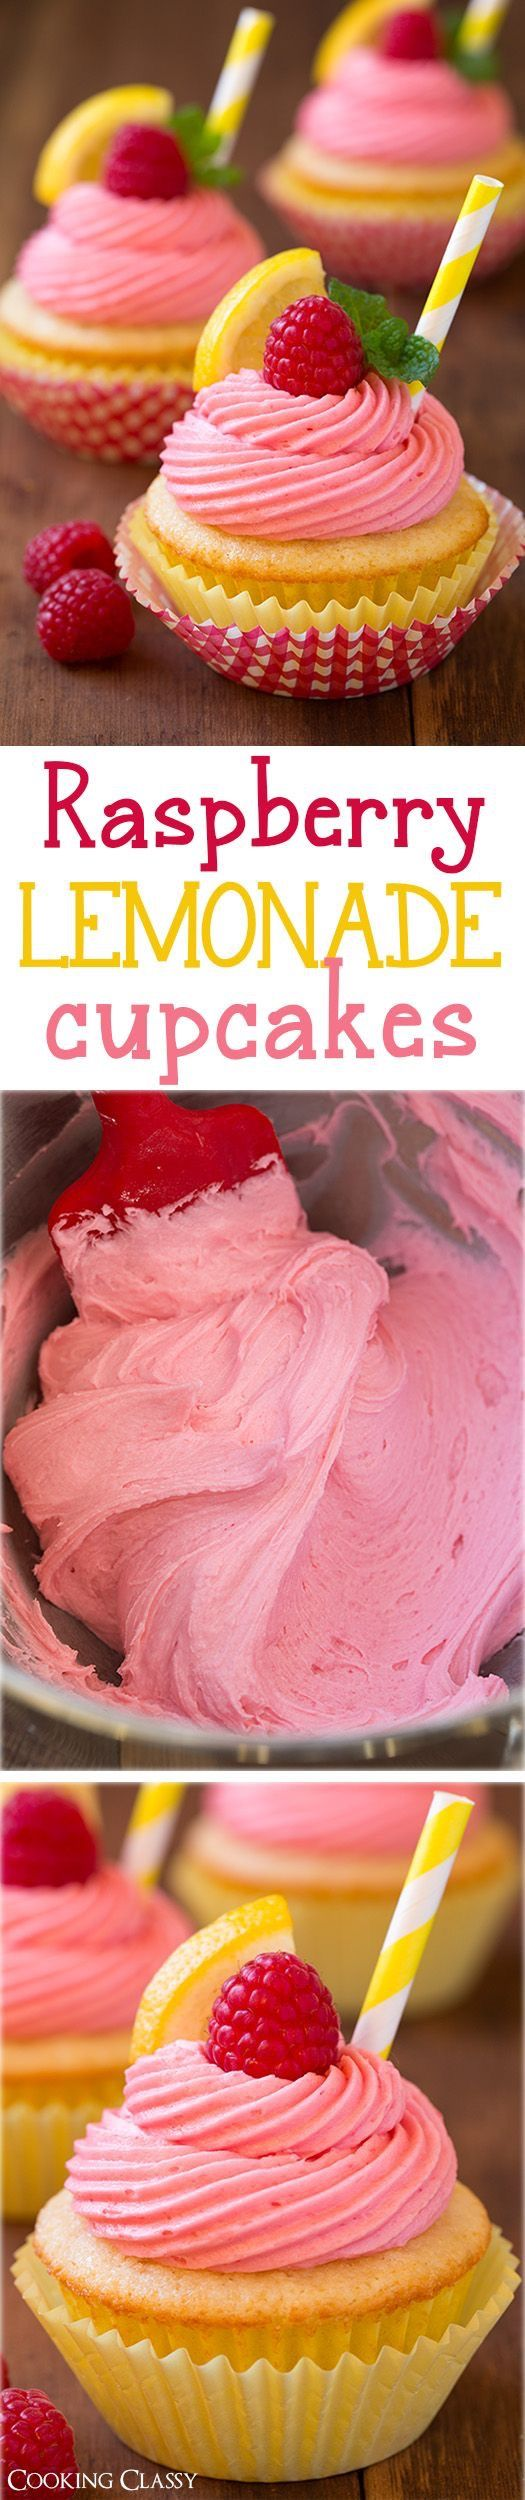 raspberry and lemonade cupcakes - A lovely reminder of summery days